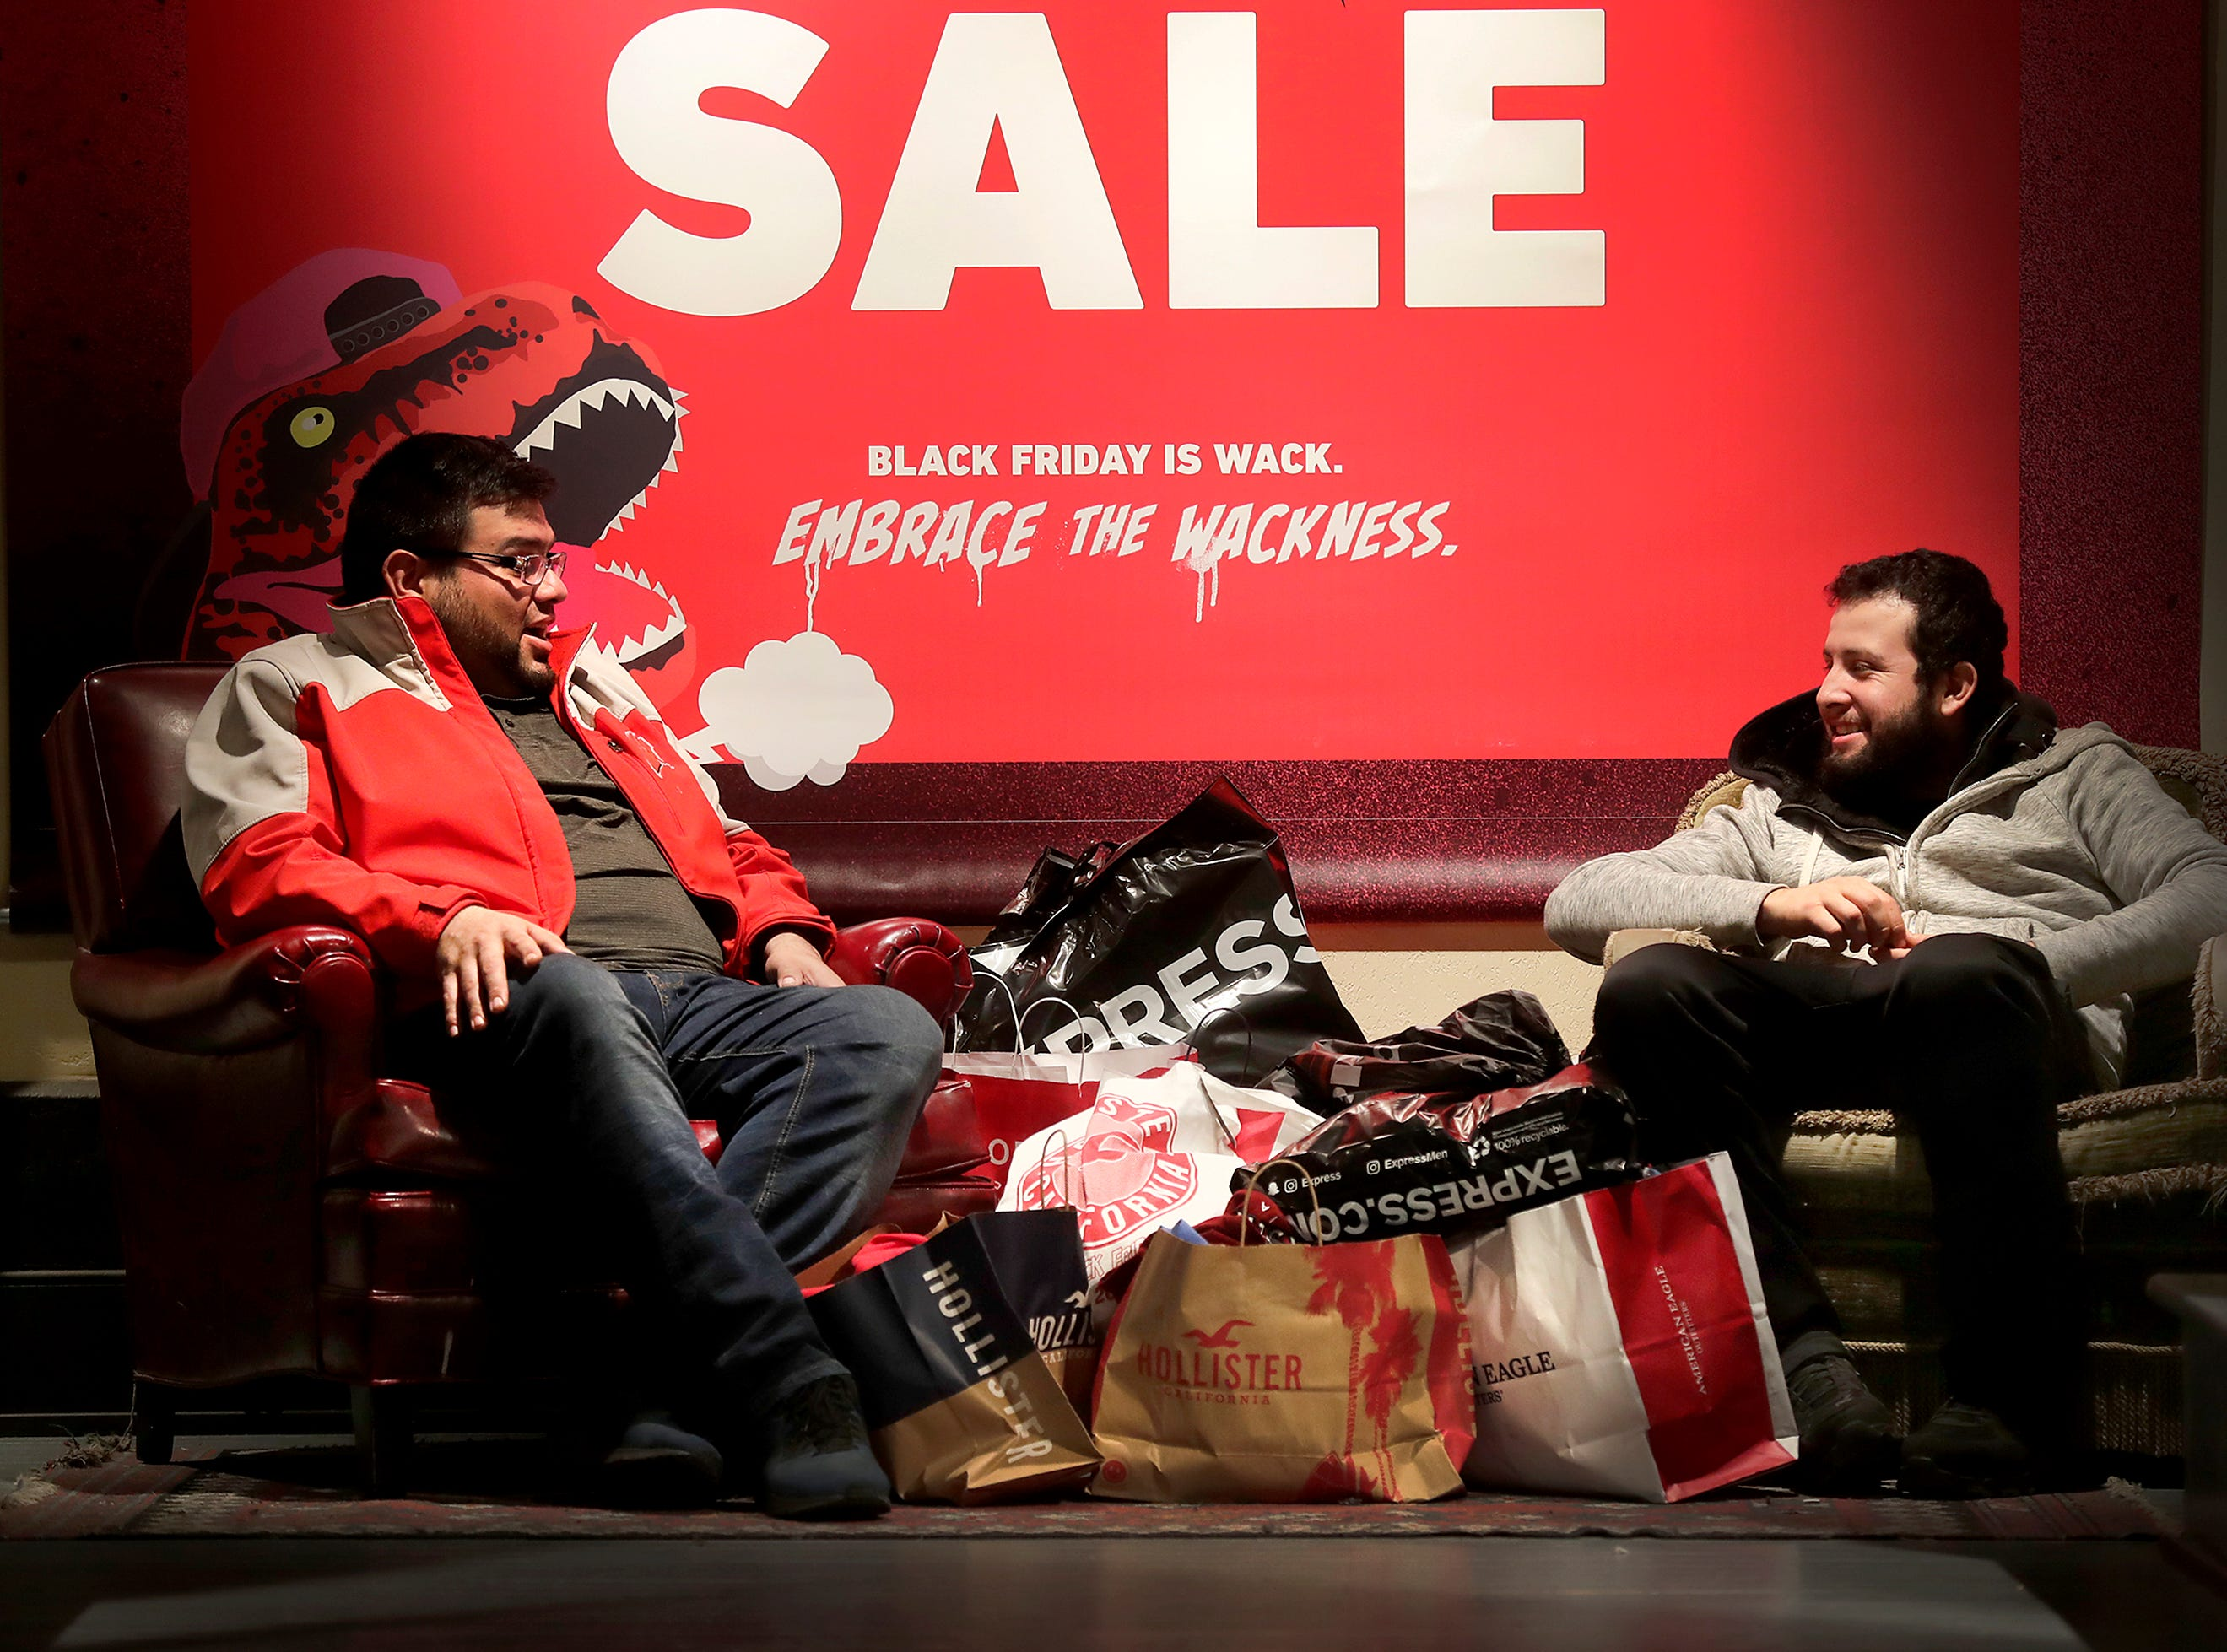 Jesus Martinez, left, and Santiago Camarena wait with their Black Friday purchases while their families shop at Hollister on Black Friday at the Fox River Mall on Friday, Nov. 23, 2018 in Grand Chute, WisWm. Glasheen/USA TODAY NETWORK-Wisconsin.